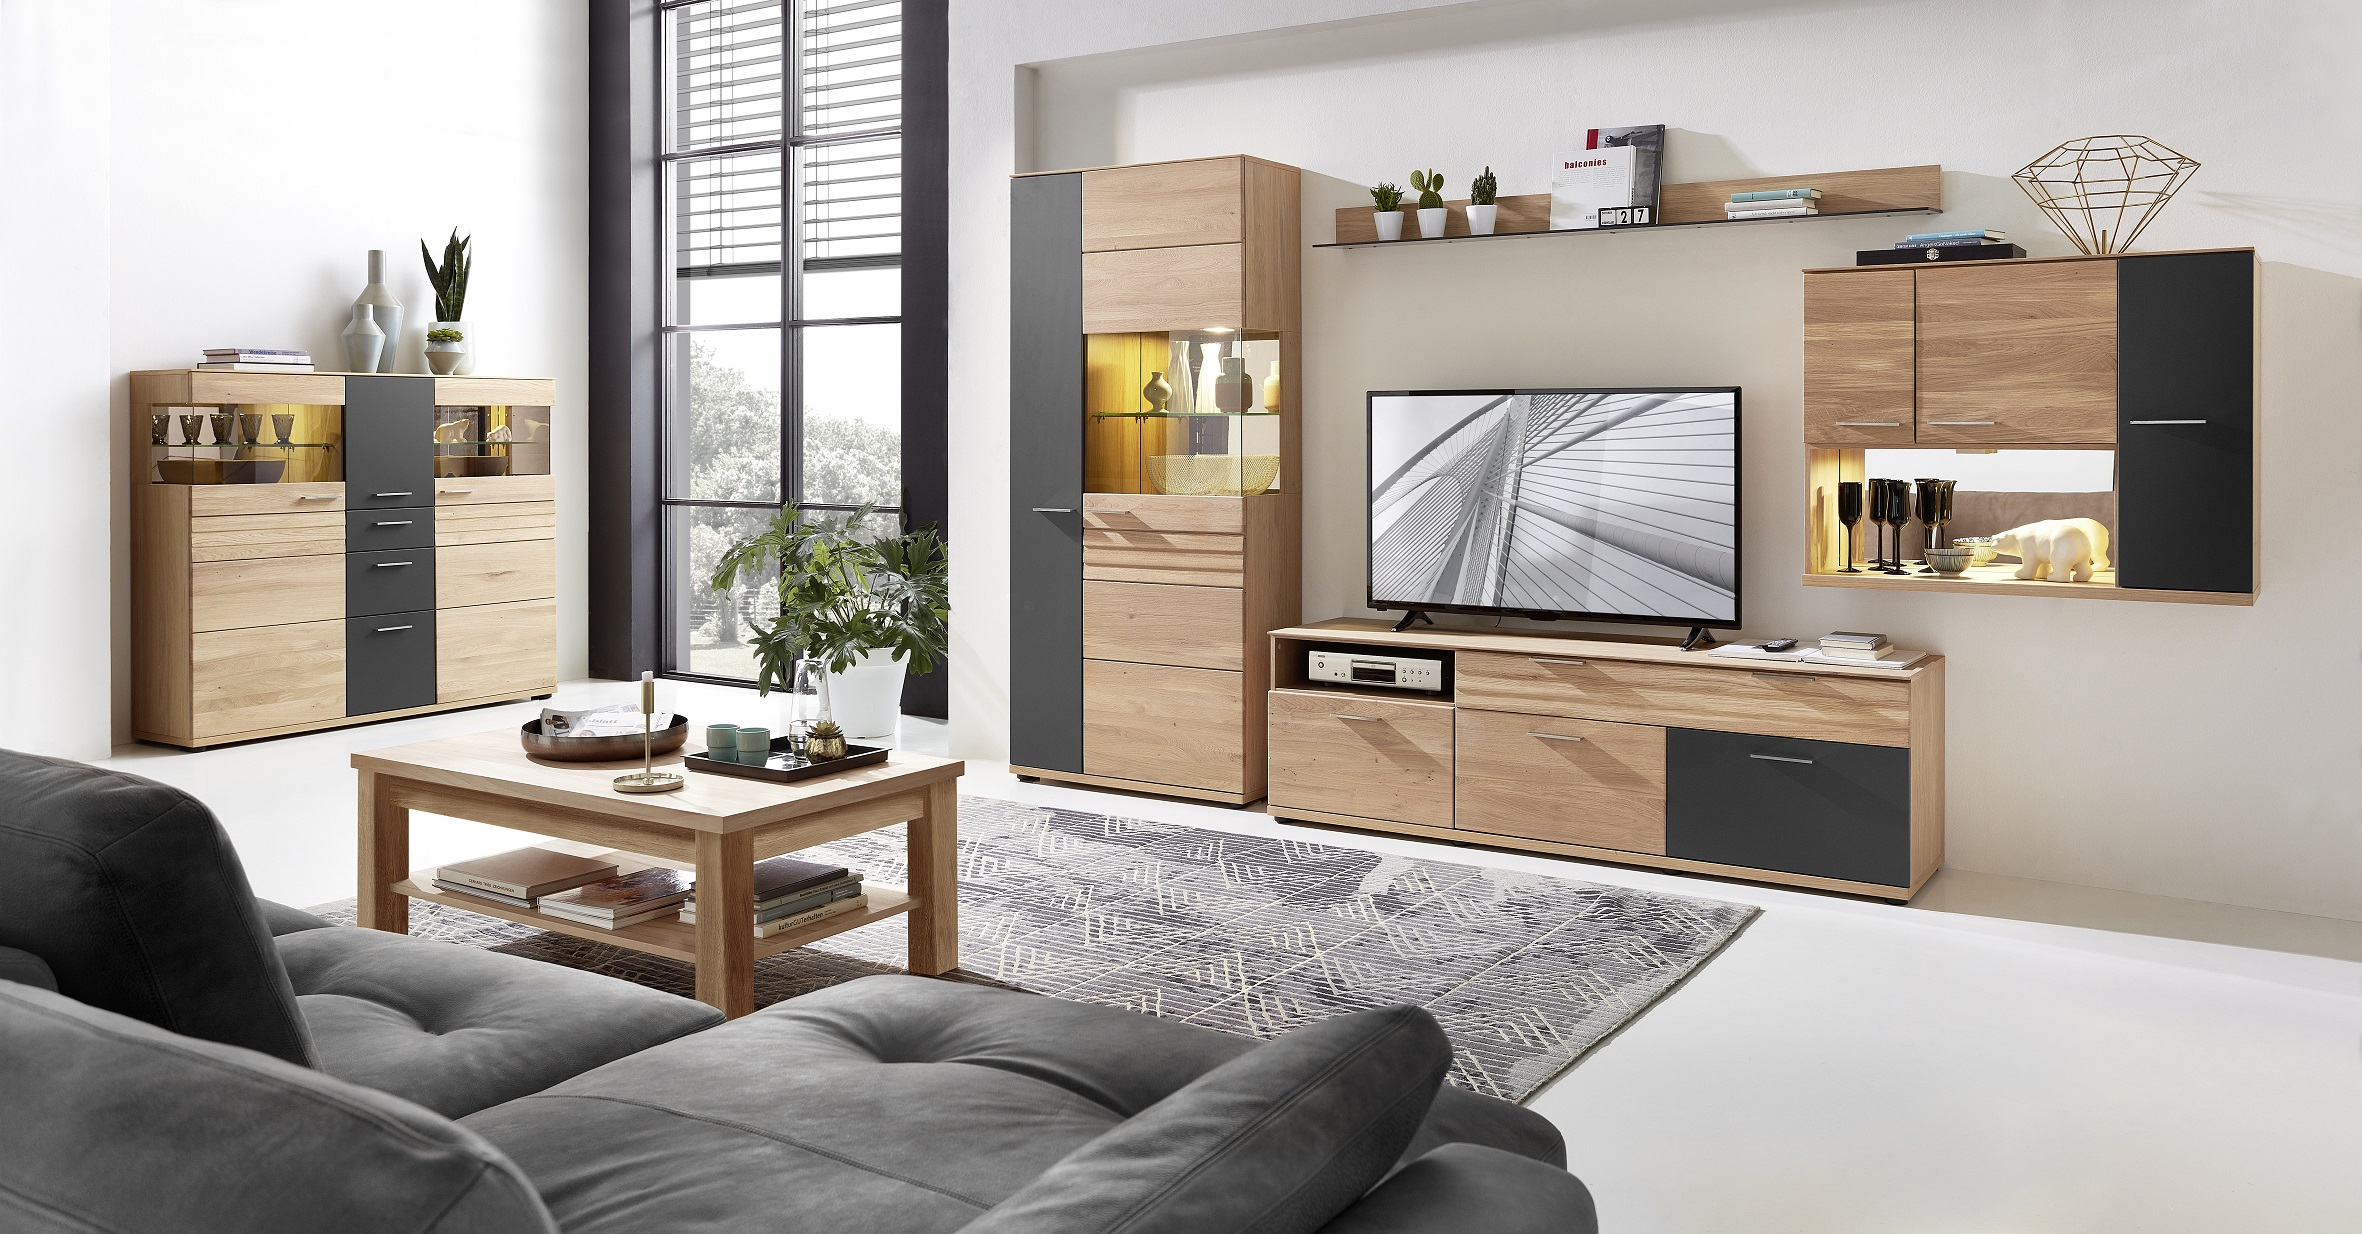 achat 40 wandboard 180 cm sch ner wohnen wandboards. Black Bedroom Furniture Sets. Home Design Ideas